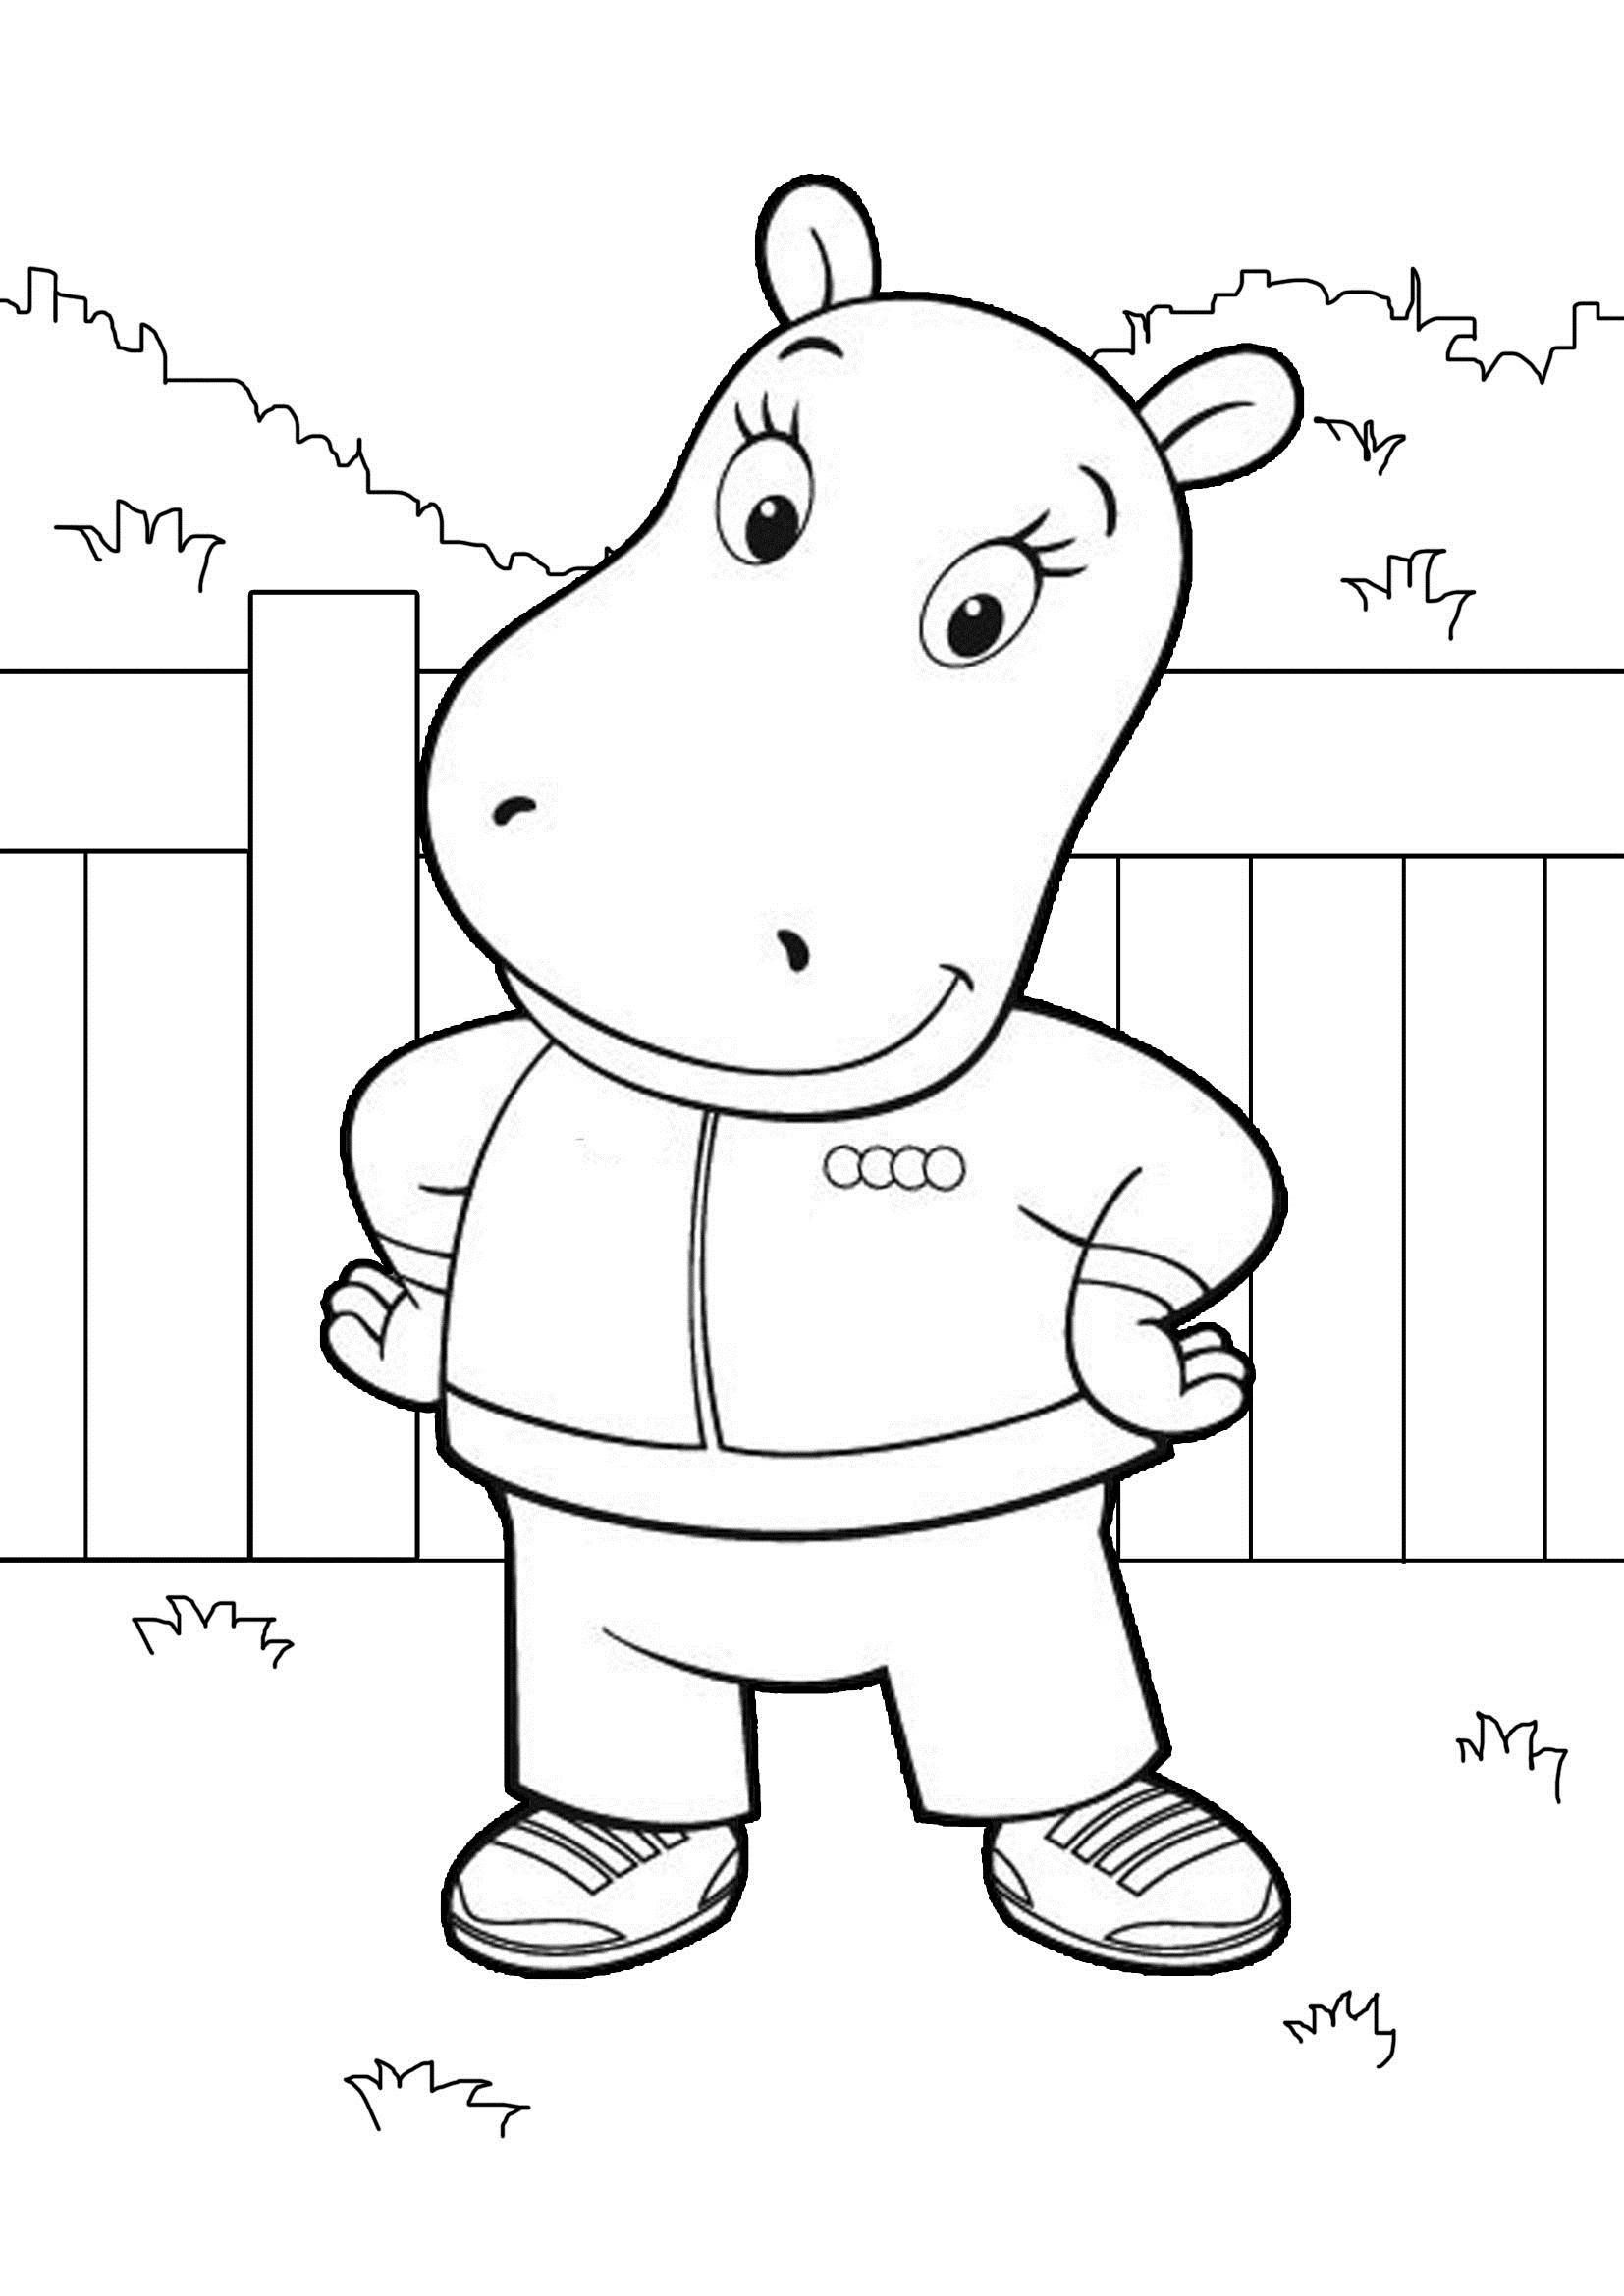 printable colouring pages free printable backyardigans coloring pages for kids printable colouring pages